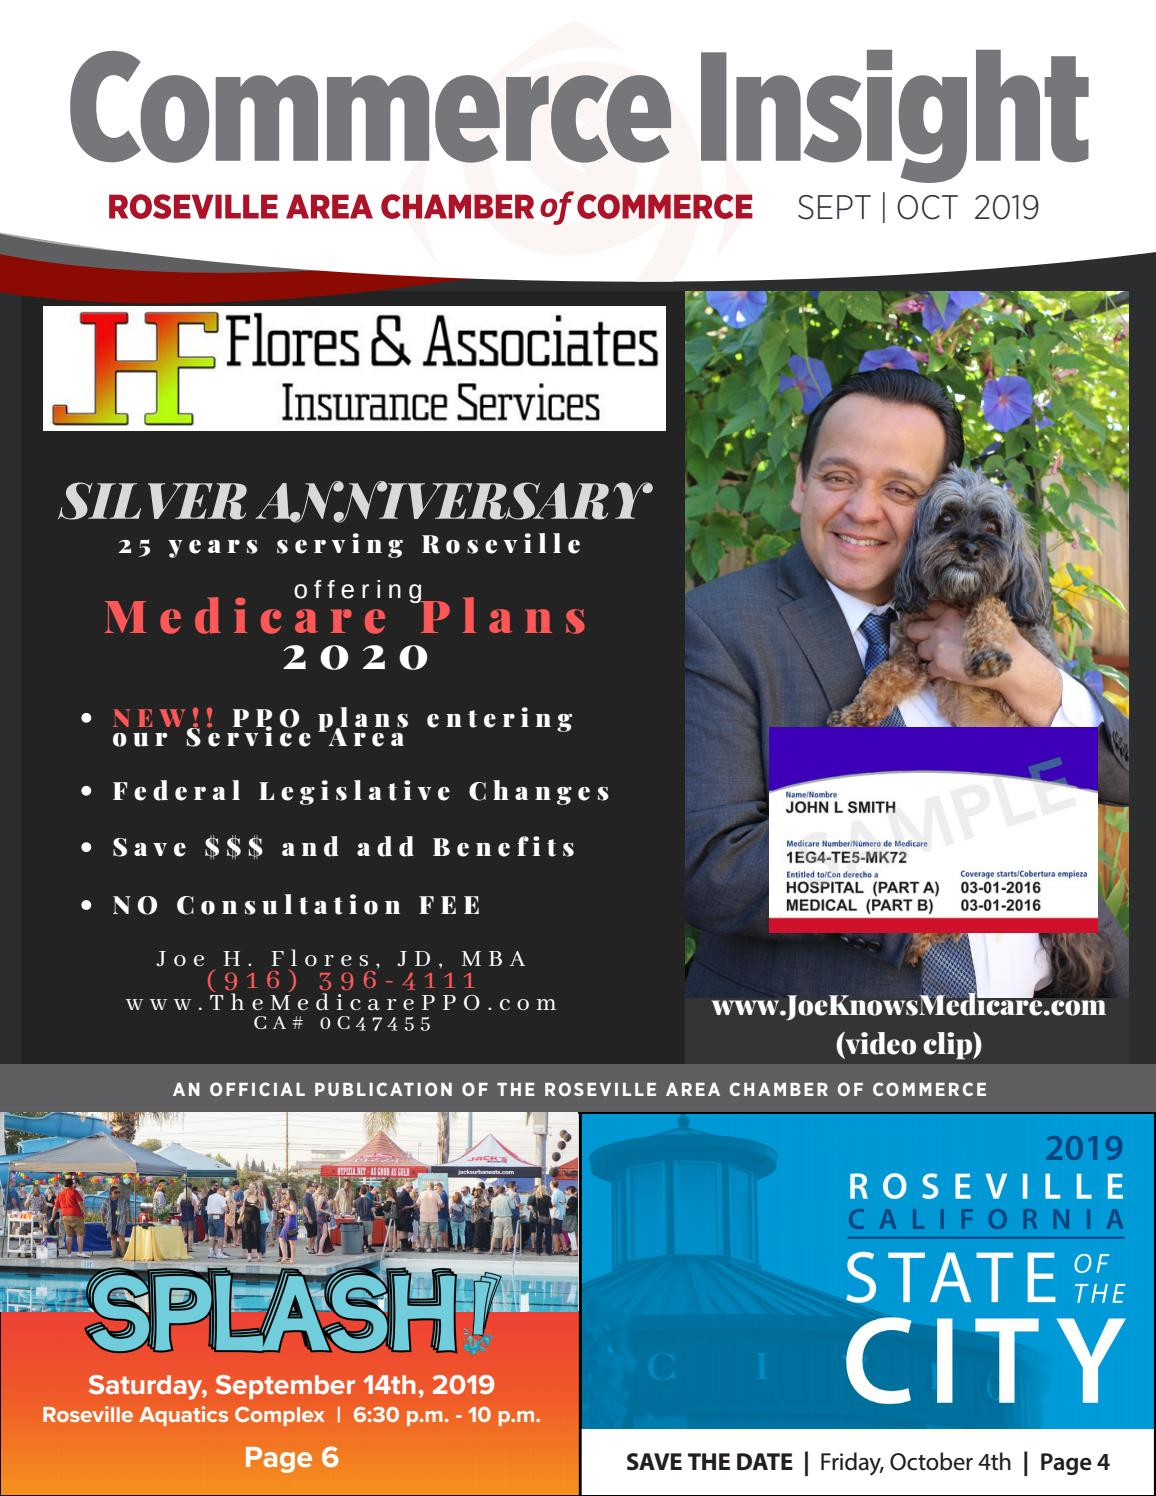 Fountains Roseville Events 2020.September October 2019 Commerce Insight By Roseville Area